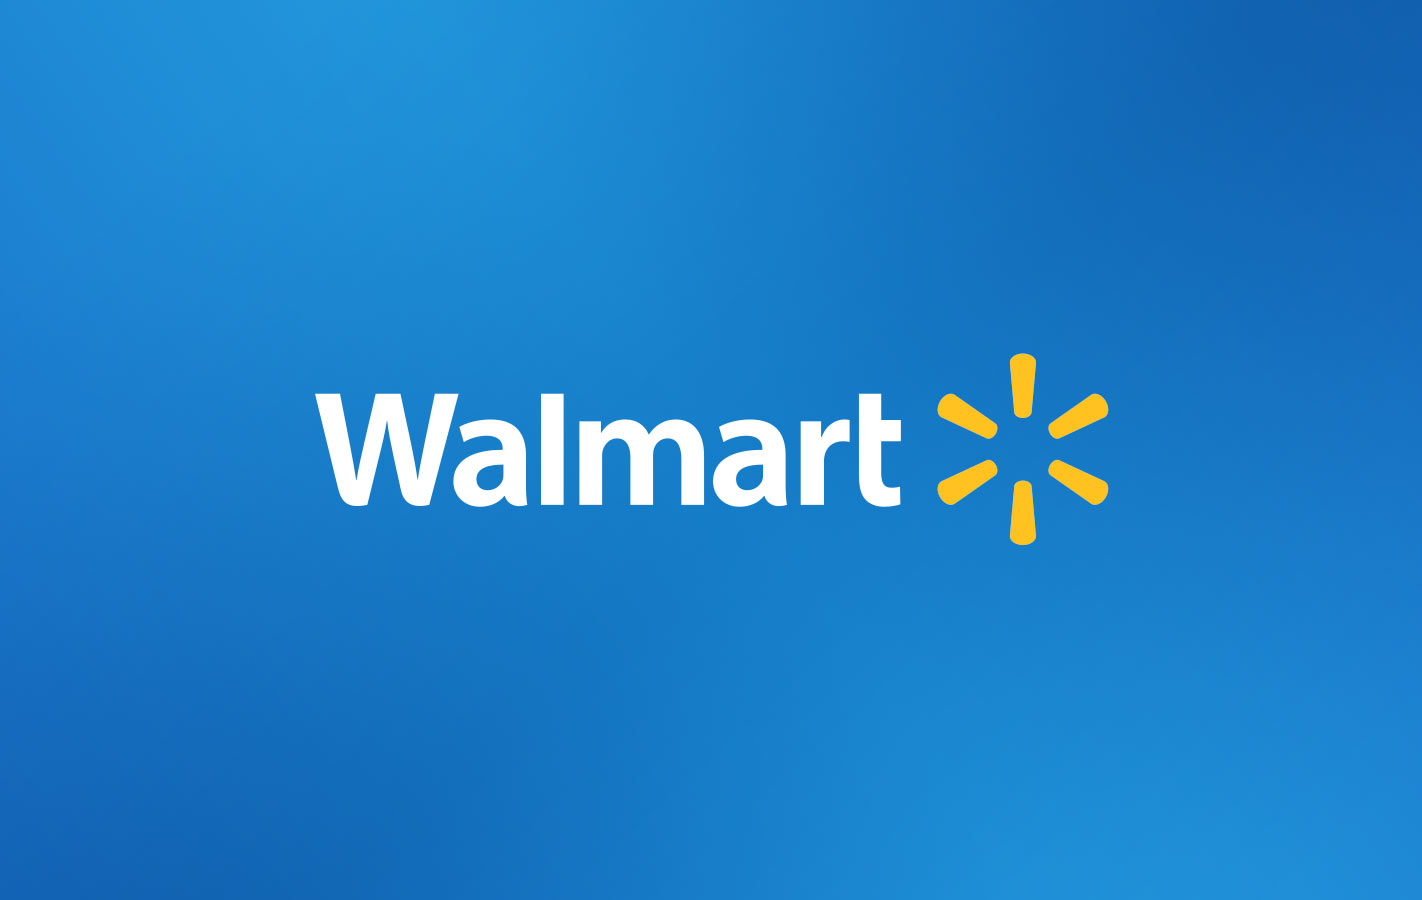 Can Walmart give a better customer experience after getting help from Goldman Sachs bankers?